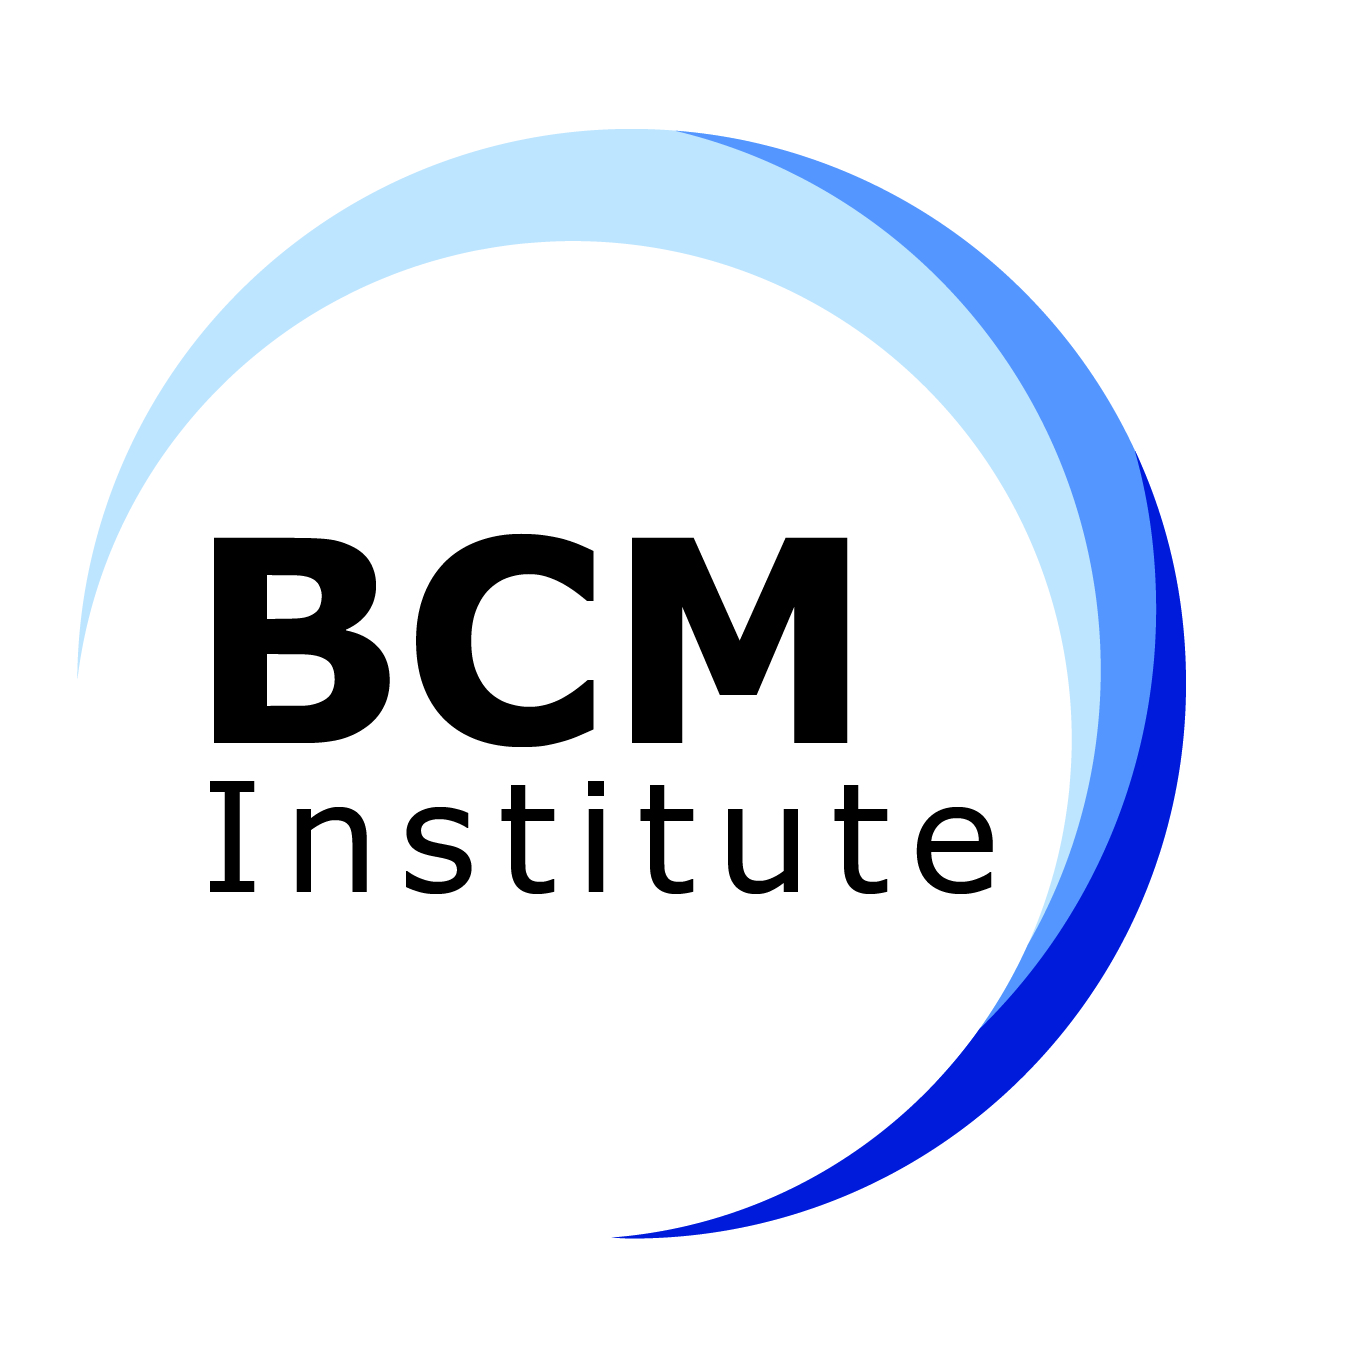 More about BCM Institute